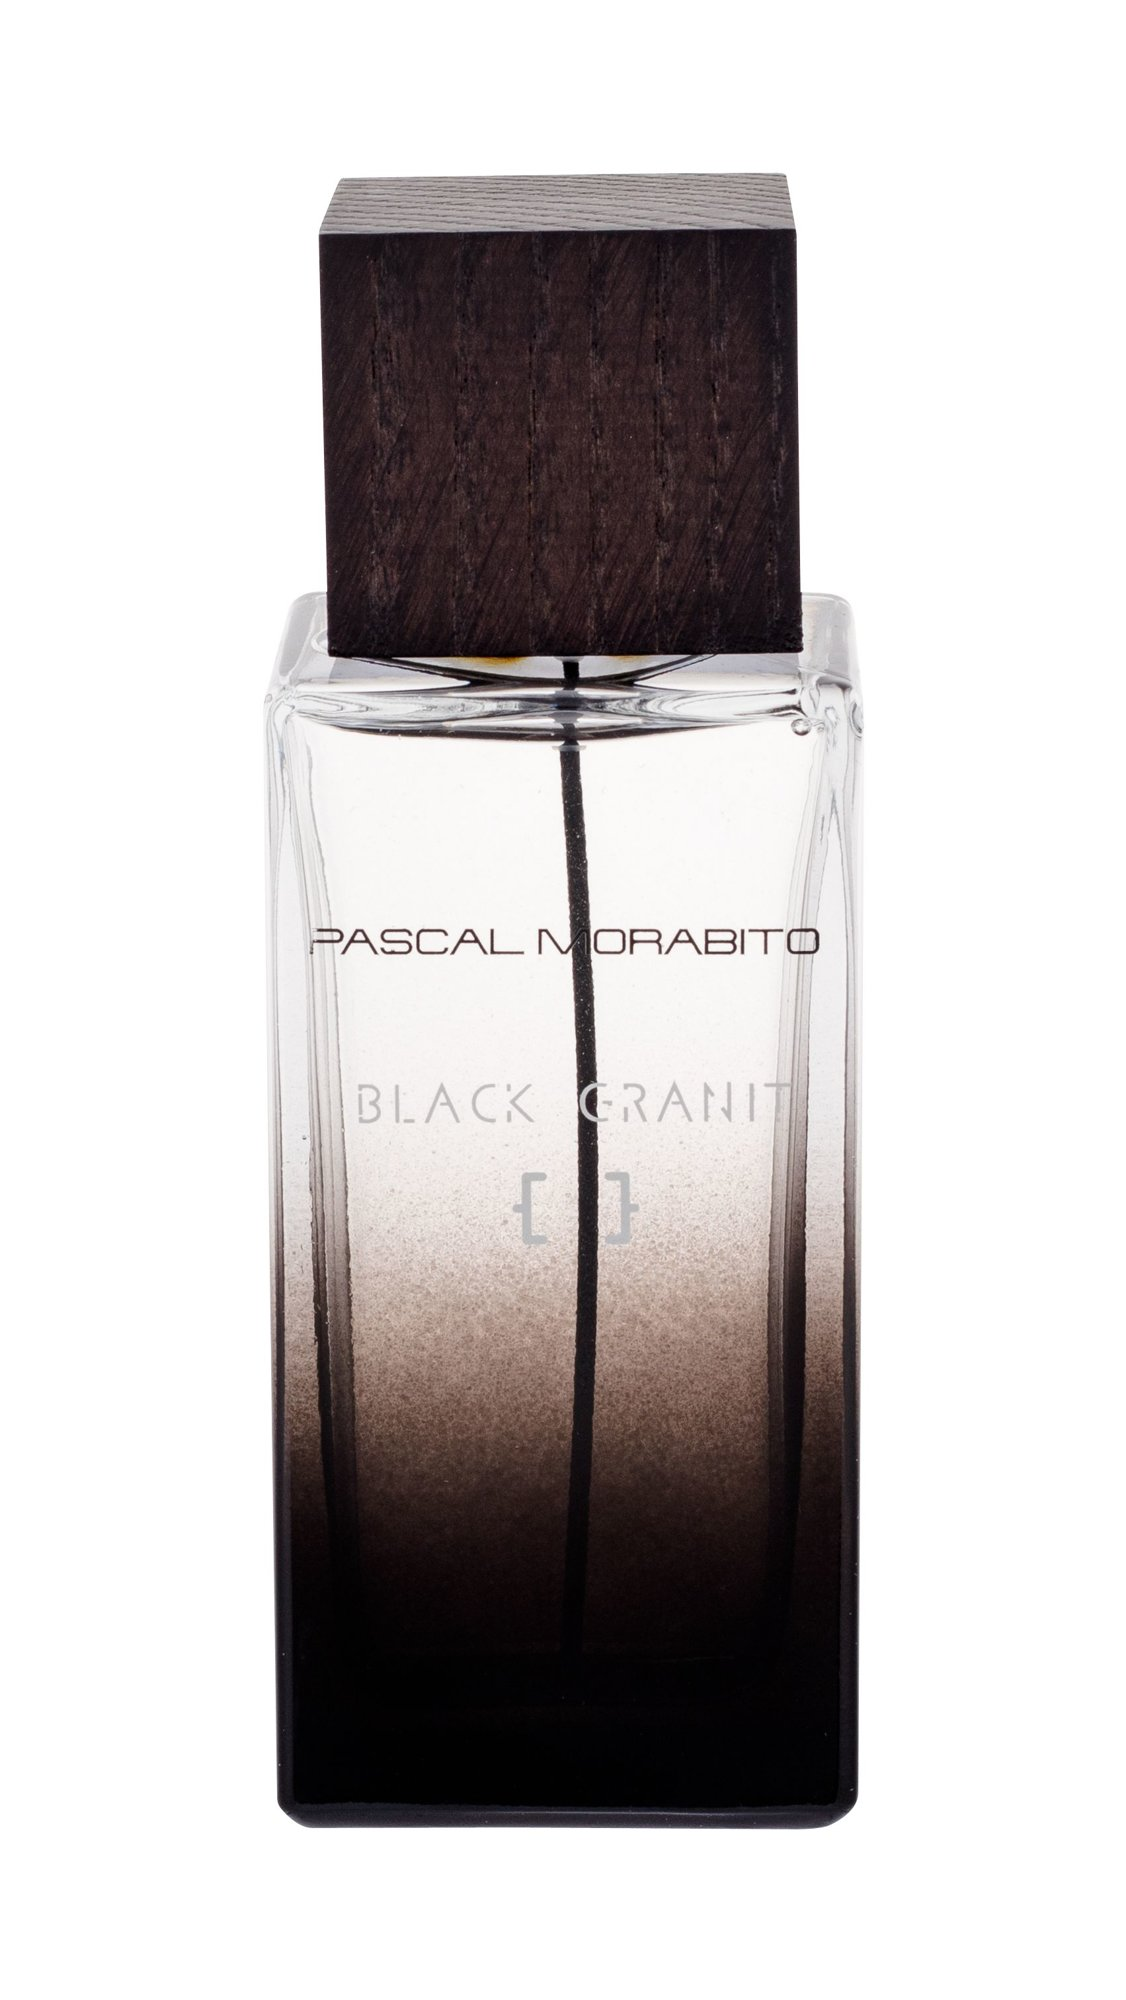 Pascal Morabito Black Granit EDT 100ml